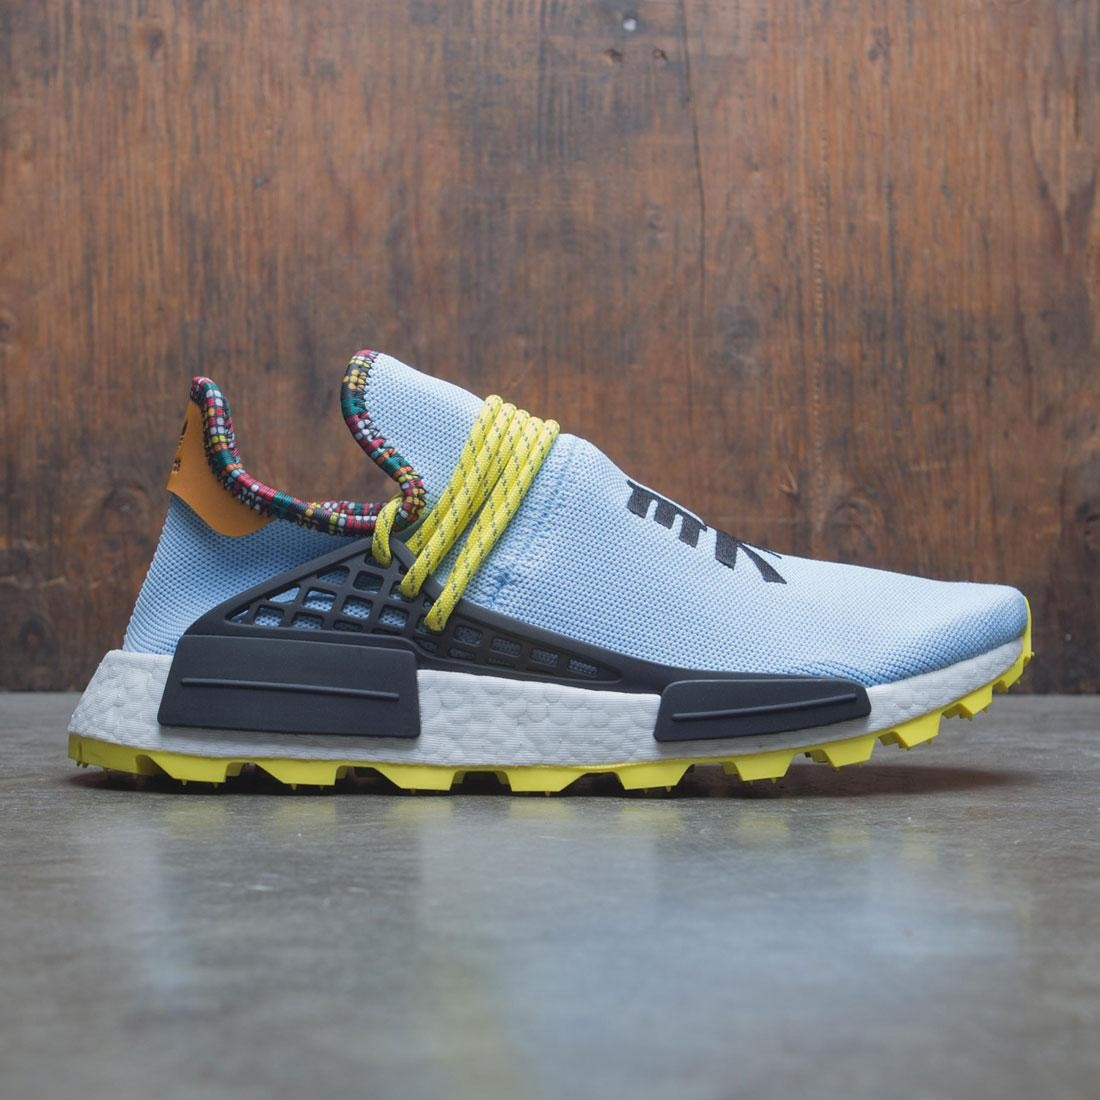 01ecfad29 Adidas x Pharrell Williams Men Solar HU NMD blue core black bright orange